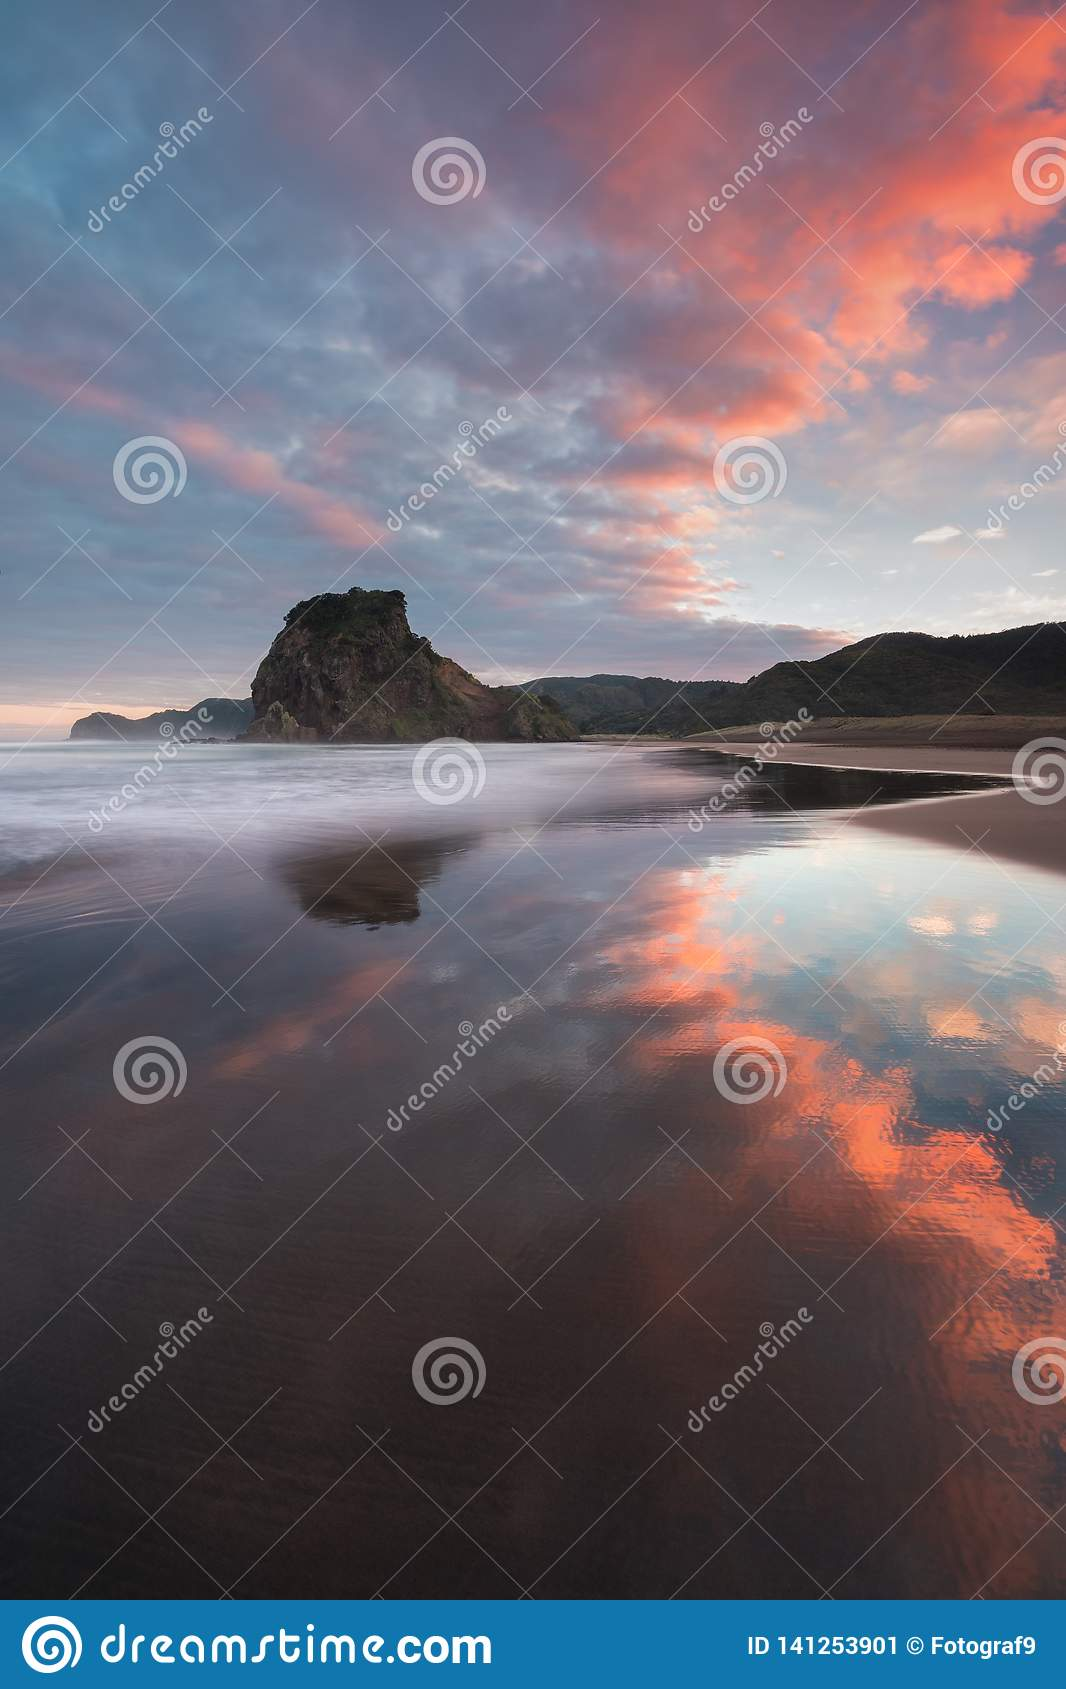 Piha beach is a coastal settlement on the western coast of the Auckland Region in New Zealand. It is one of the most popular beach